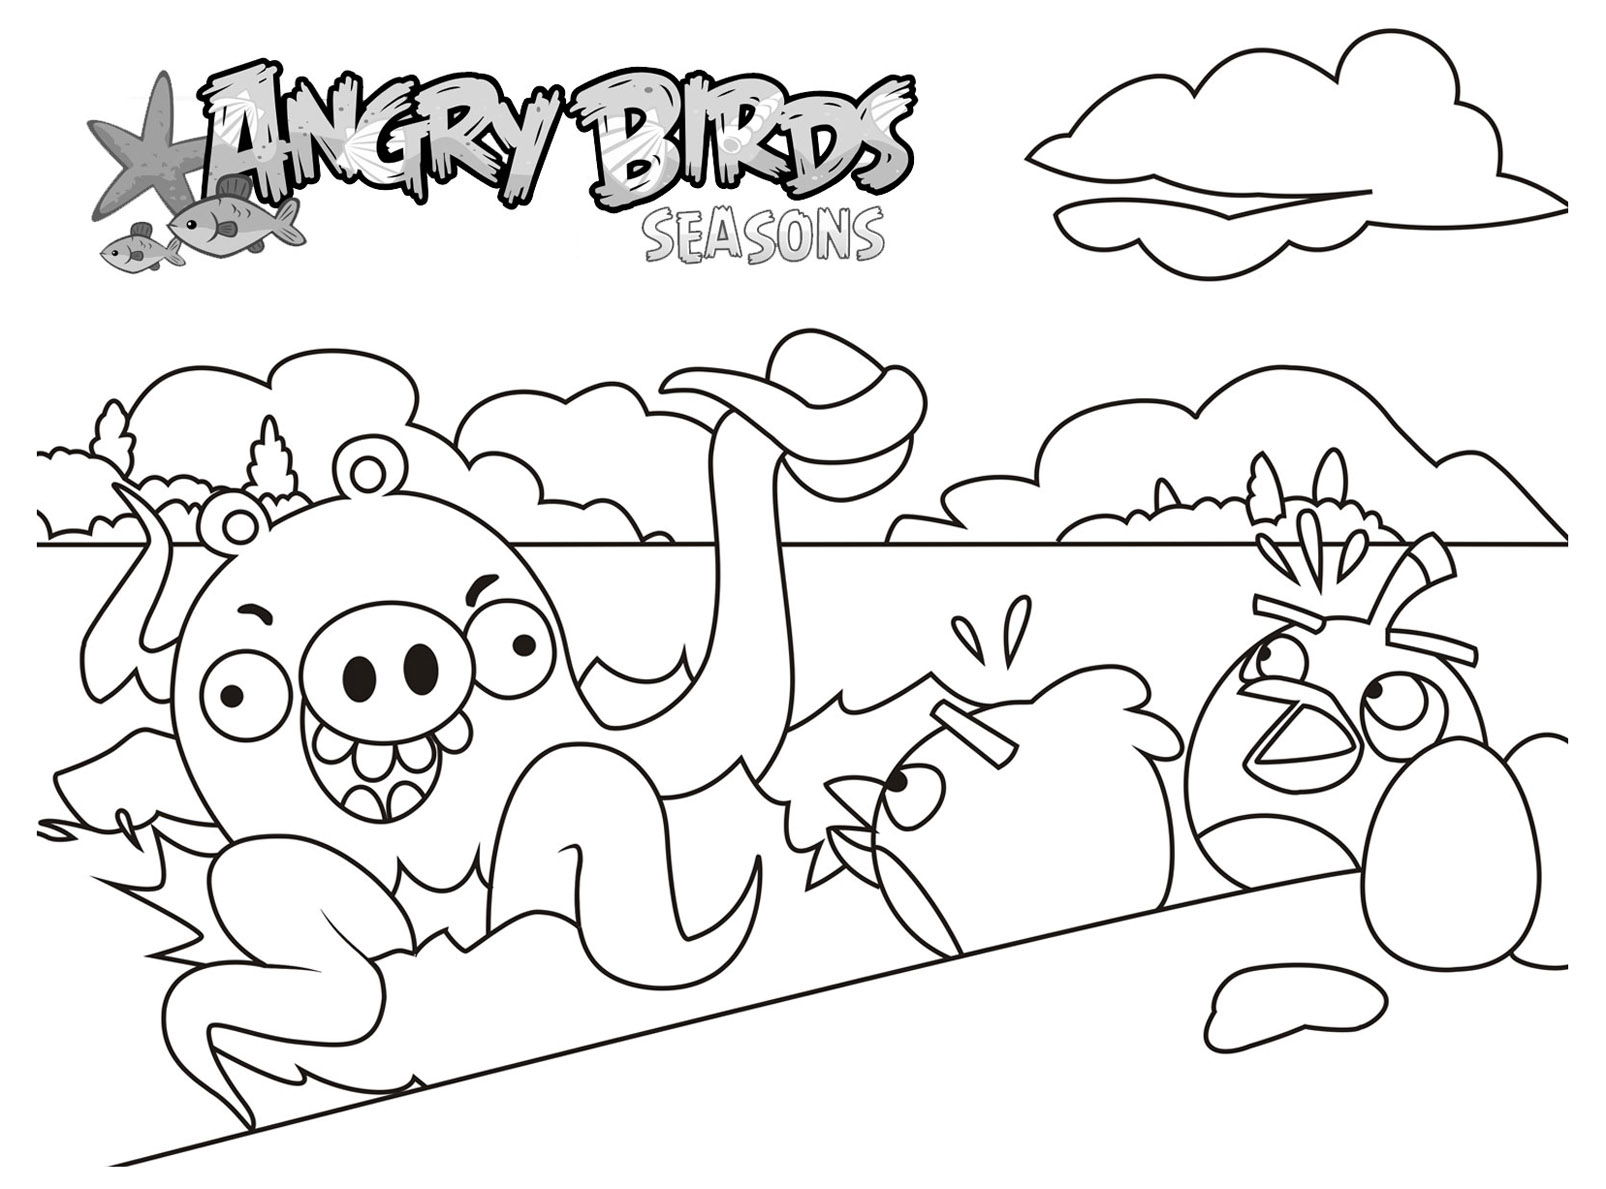 Free Angry Birds Coloring Page To Print And Color For Kids